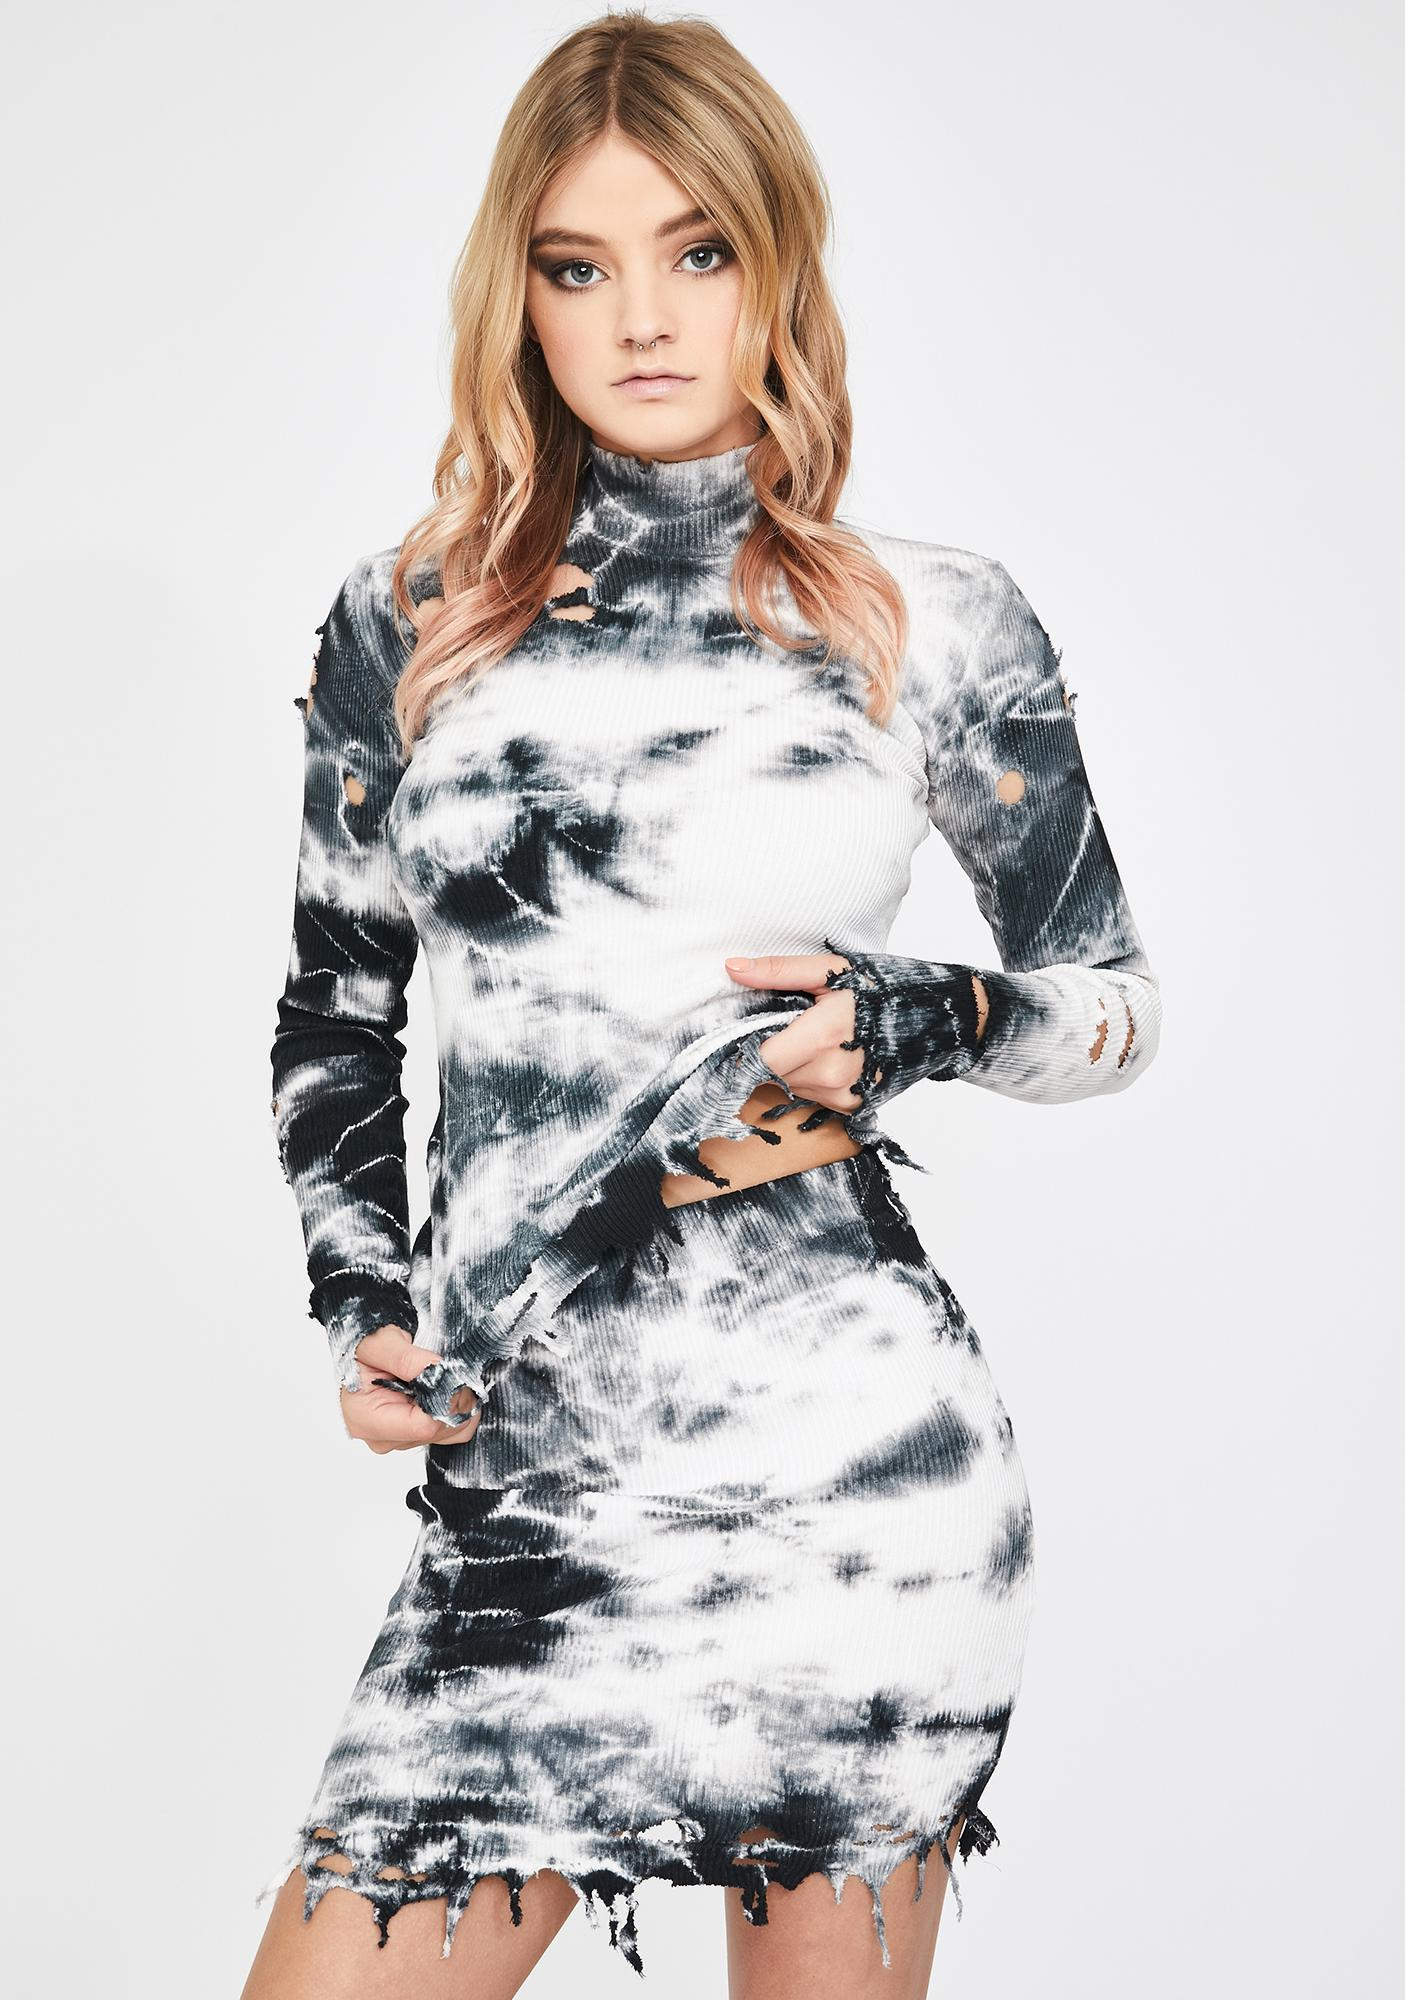 Kiki Riki White Keep It Chill Tie Dye Set